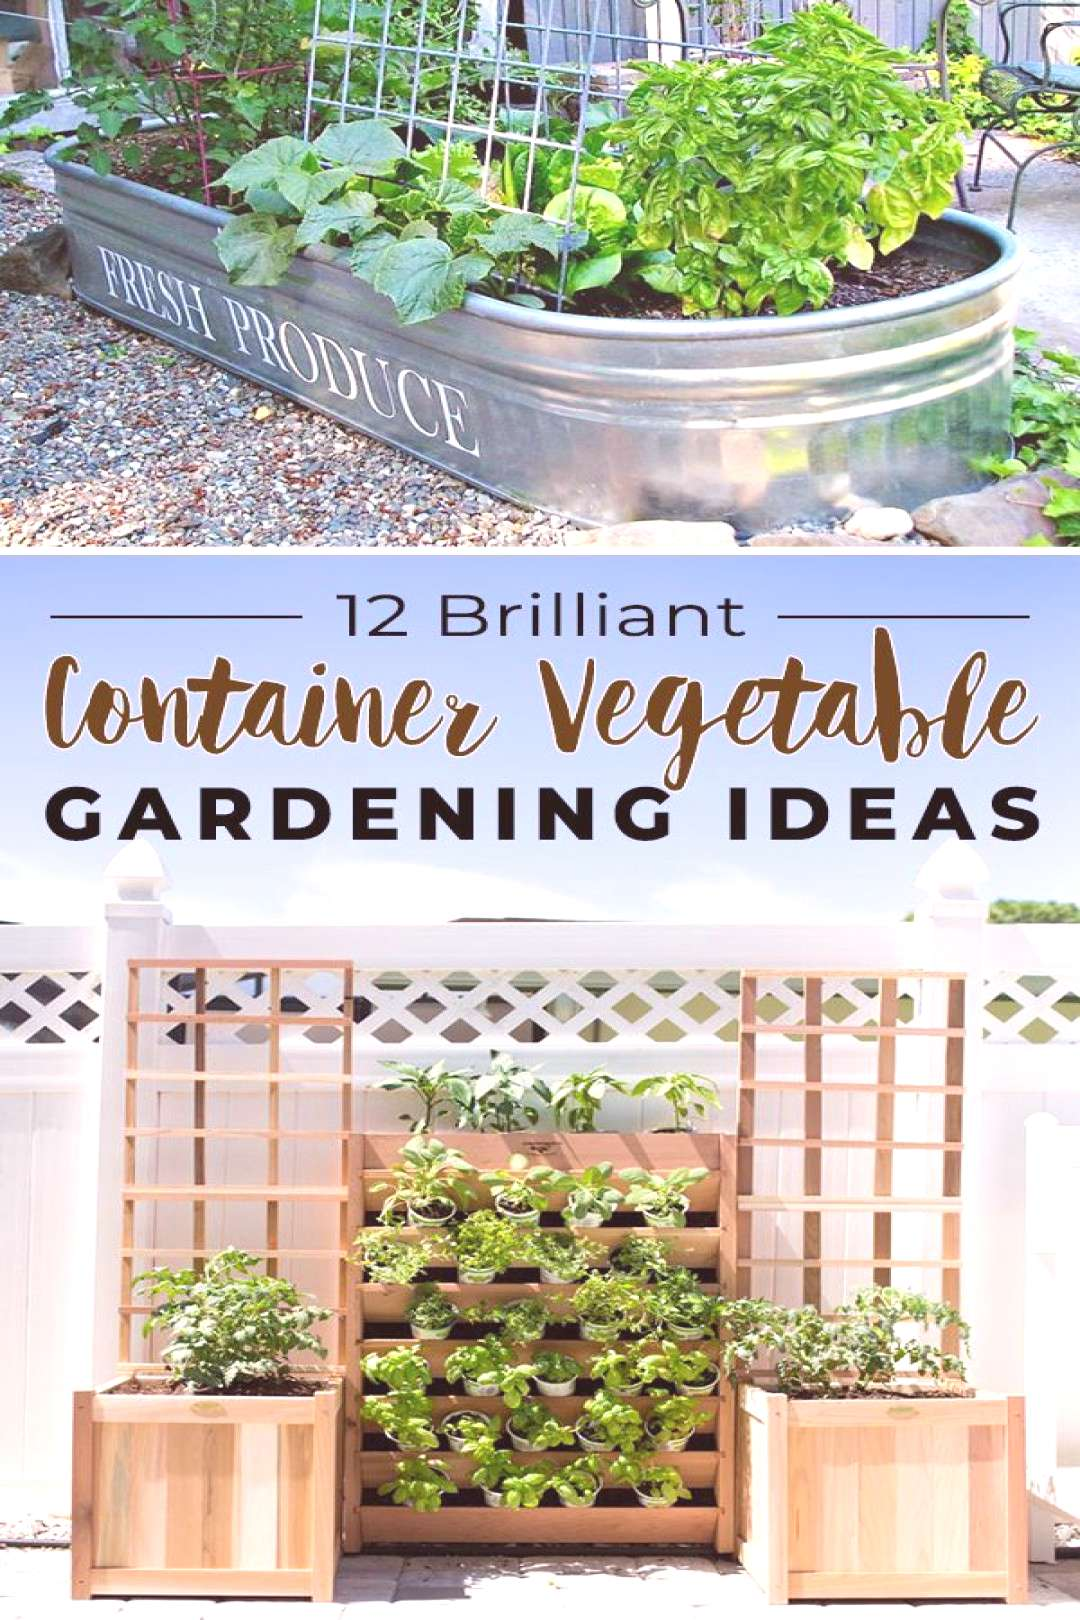 We'll explain just how to grow vegetables in containers, which vegetables grow best in pots, and cr